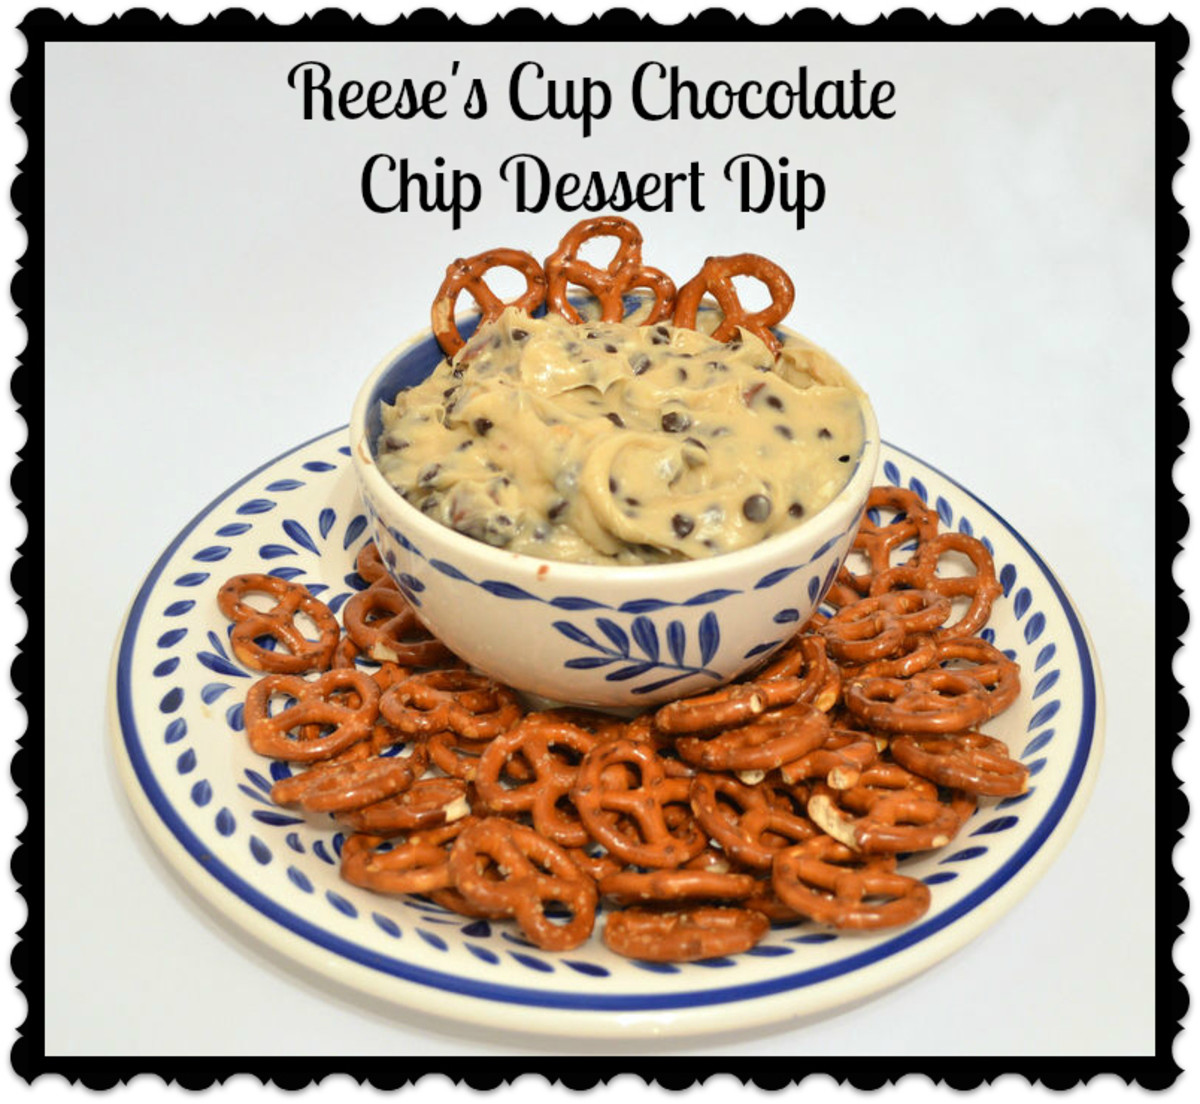 Reese's Peanut Butter Cup Chocolate Chip Cookie Dough Dessert Dip